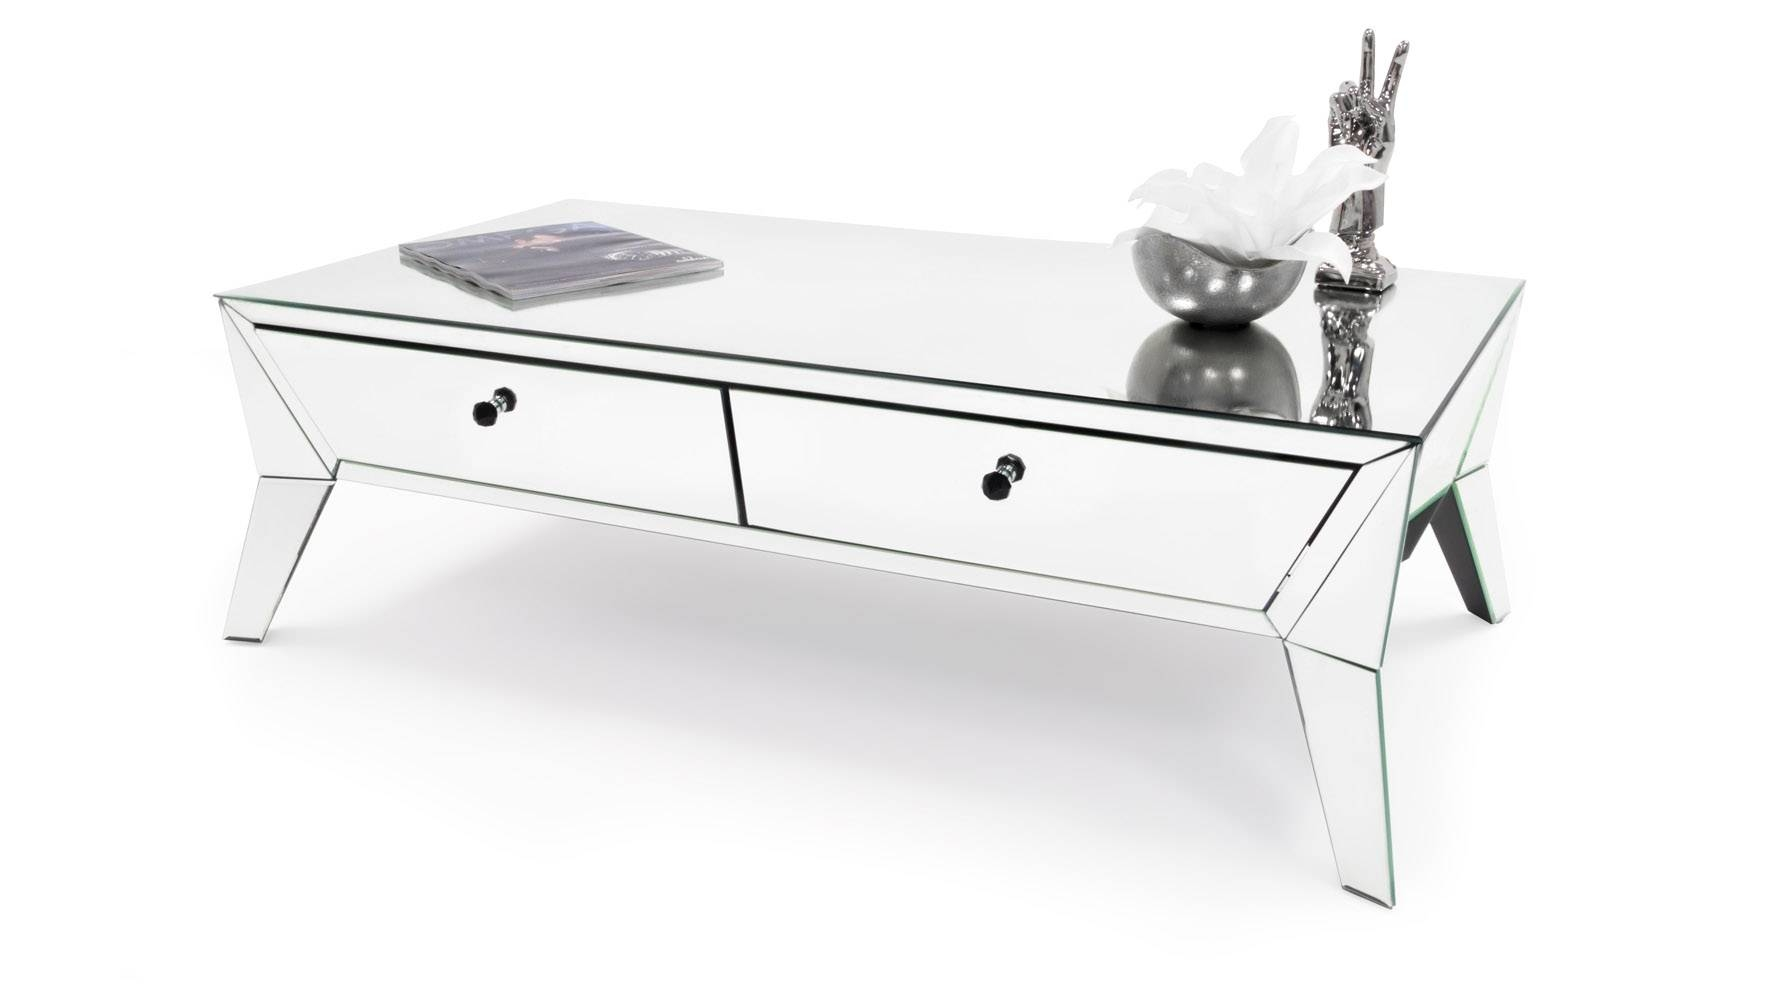 Lave Mirrored Glass Coffee Table | Zuri Furniture In Mirrored Coffee Tables (View 19 of 30)